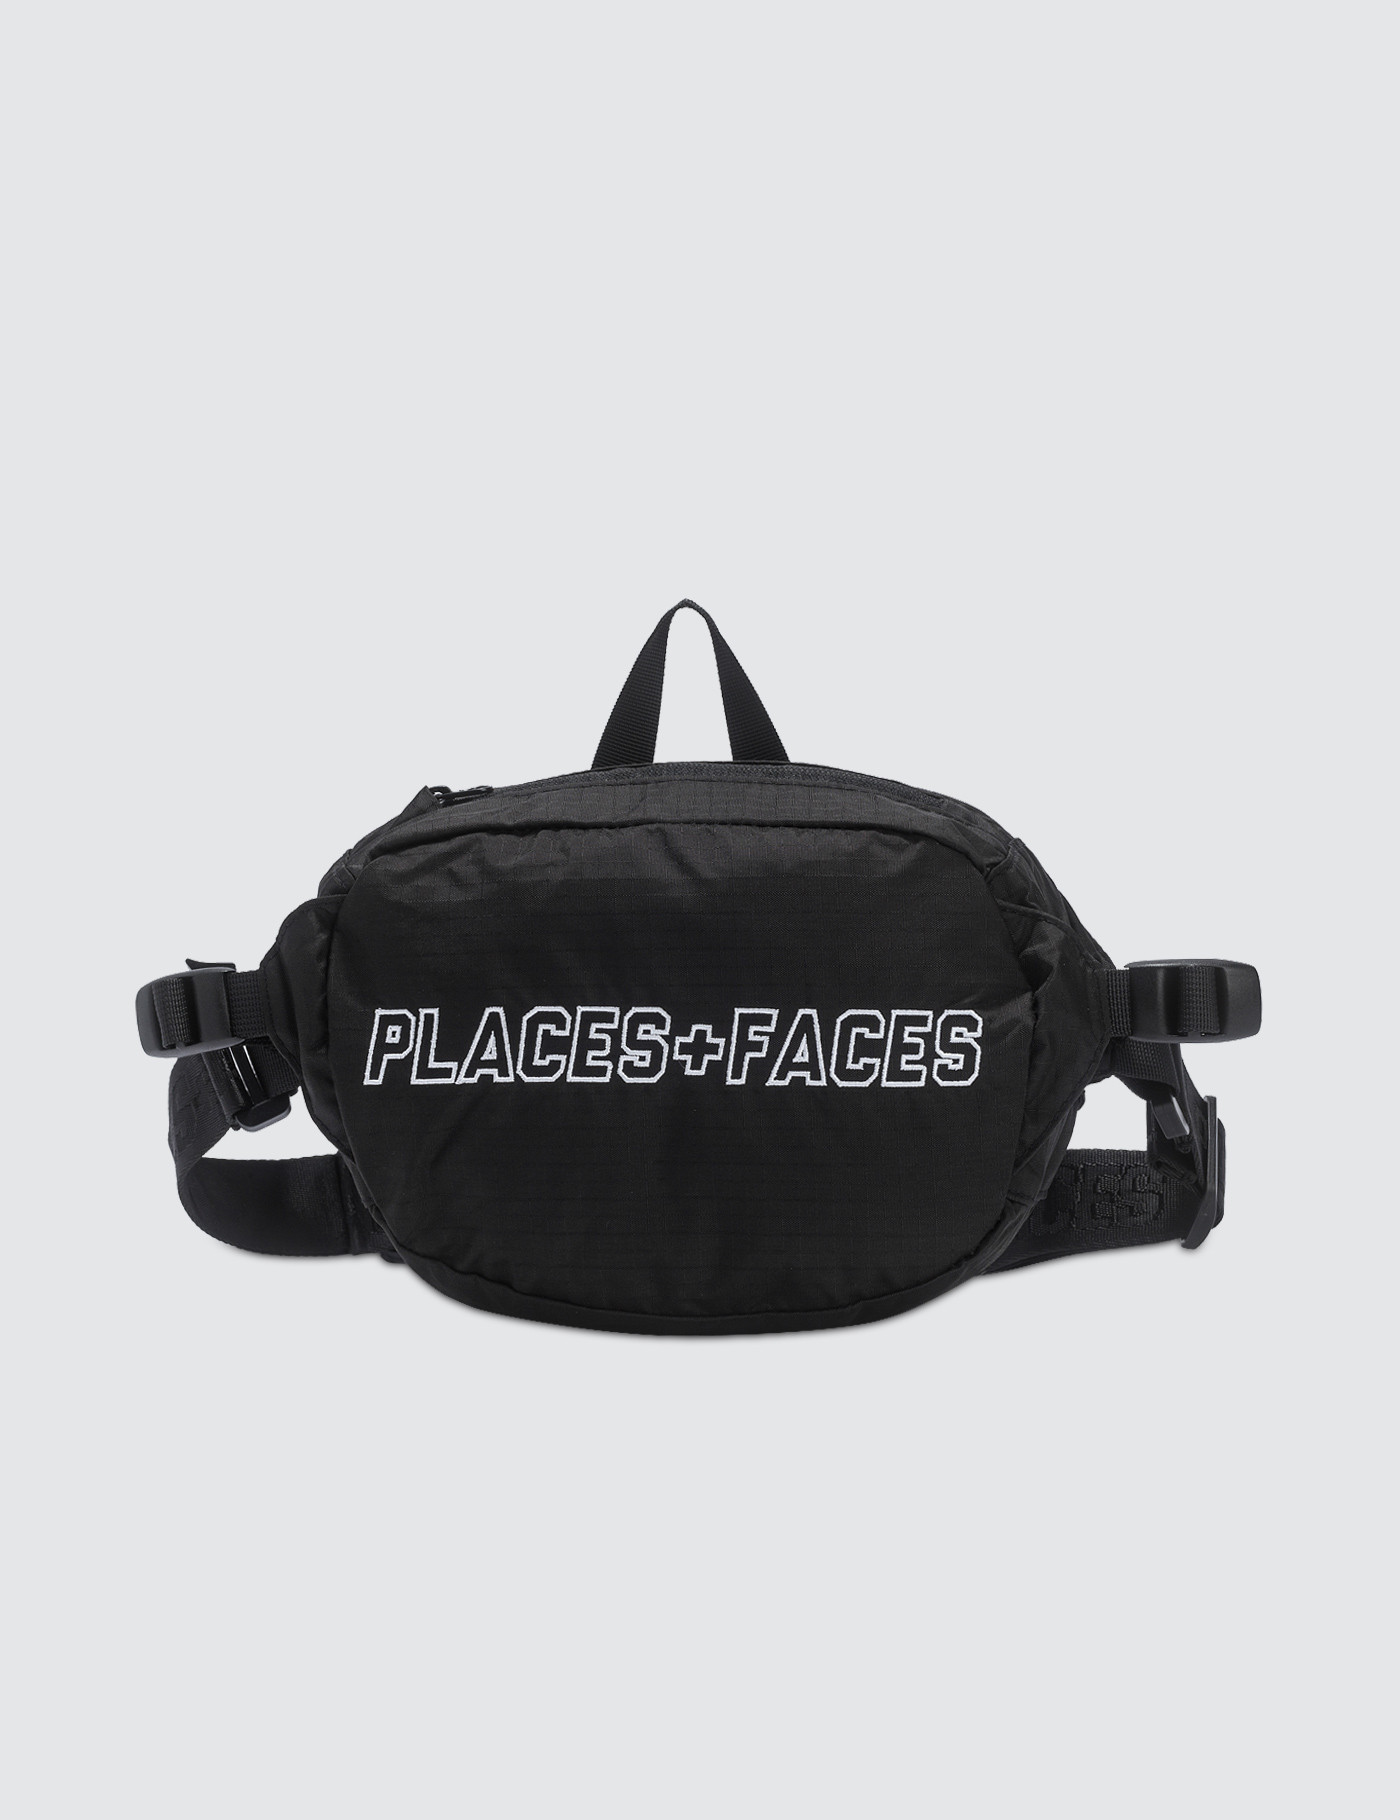 Buy Original Places + Faces Pouch Bag at Indonesia  6127834a8f03a